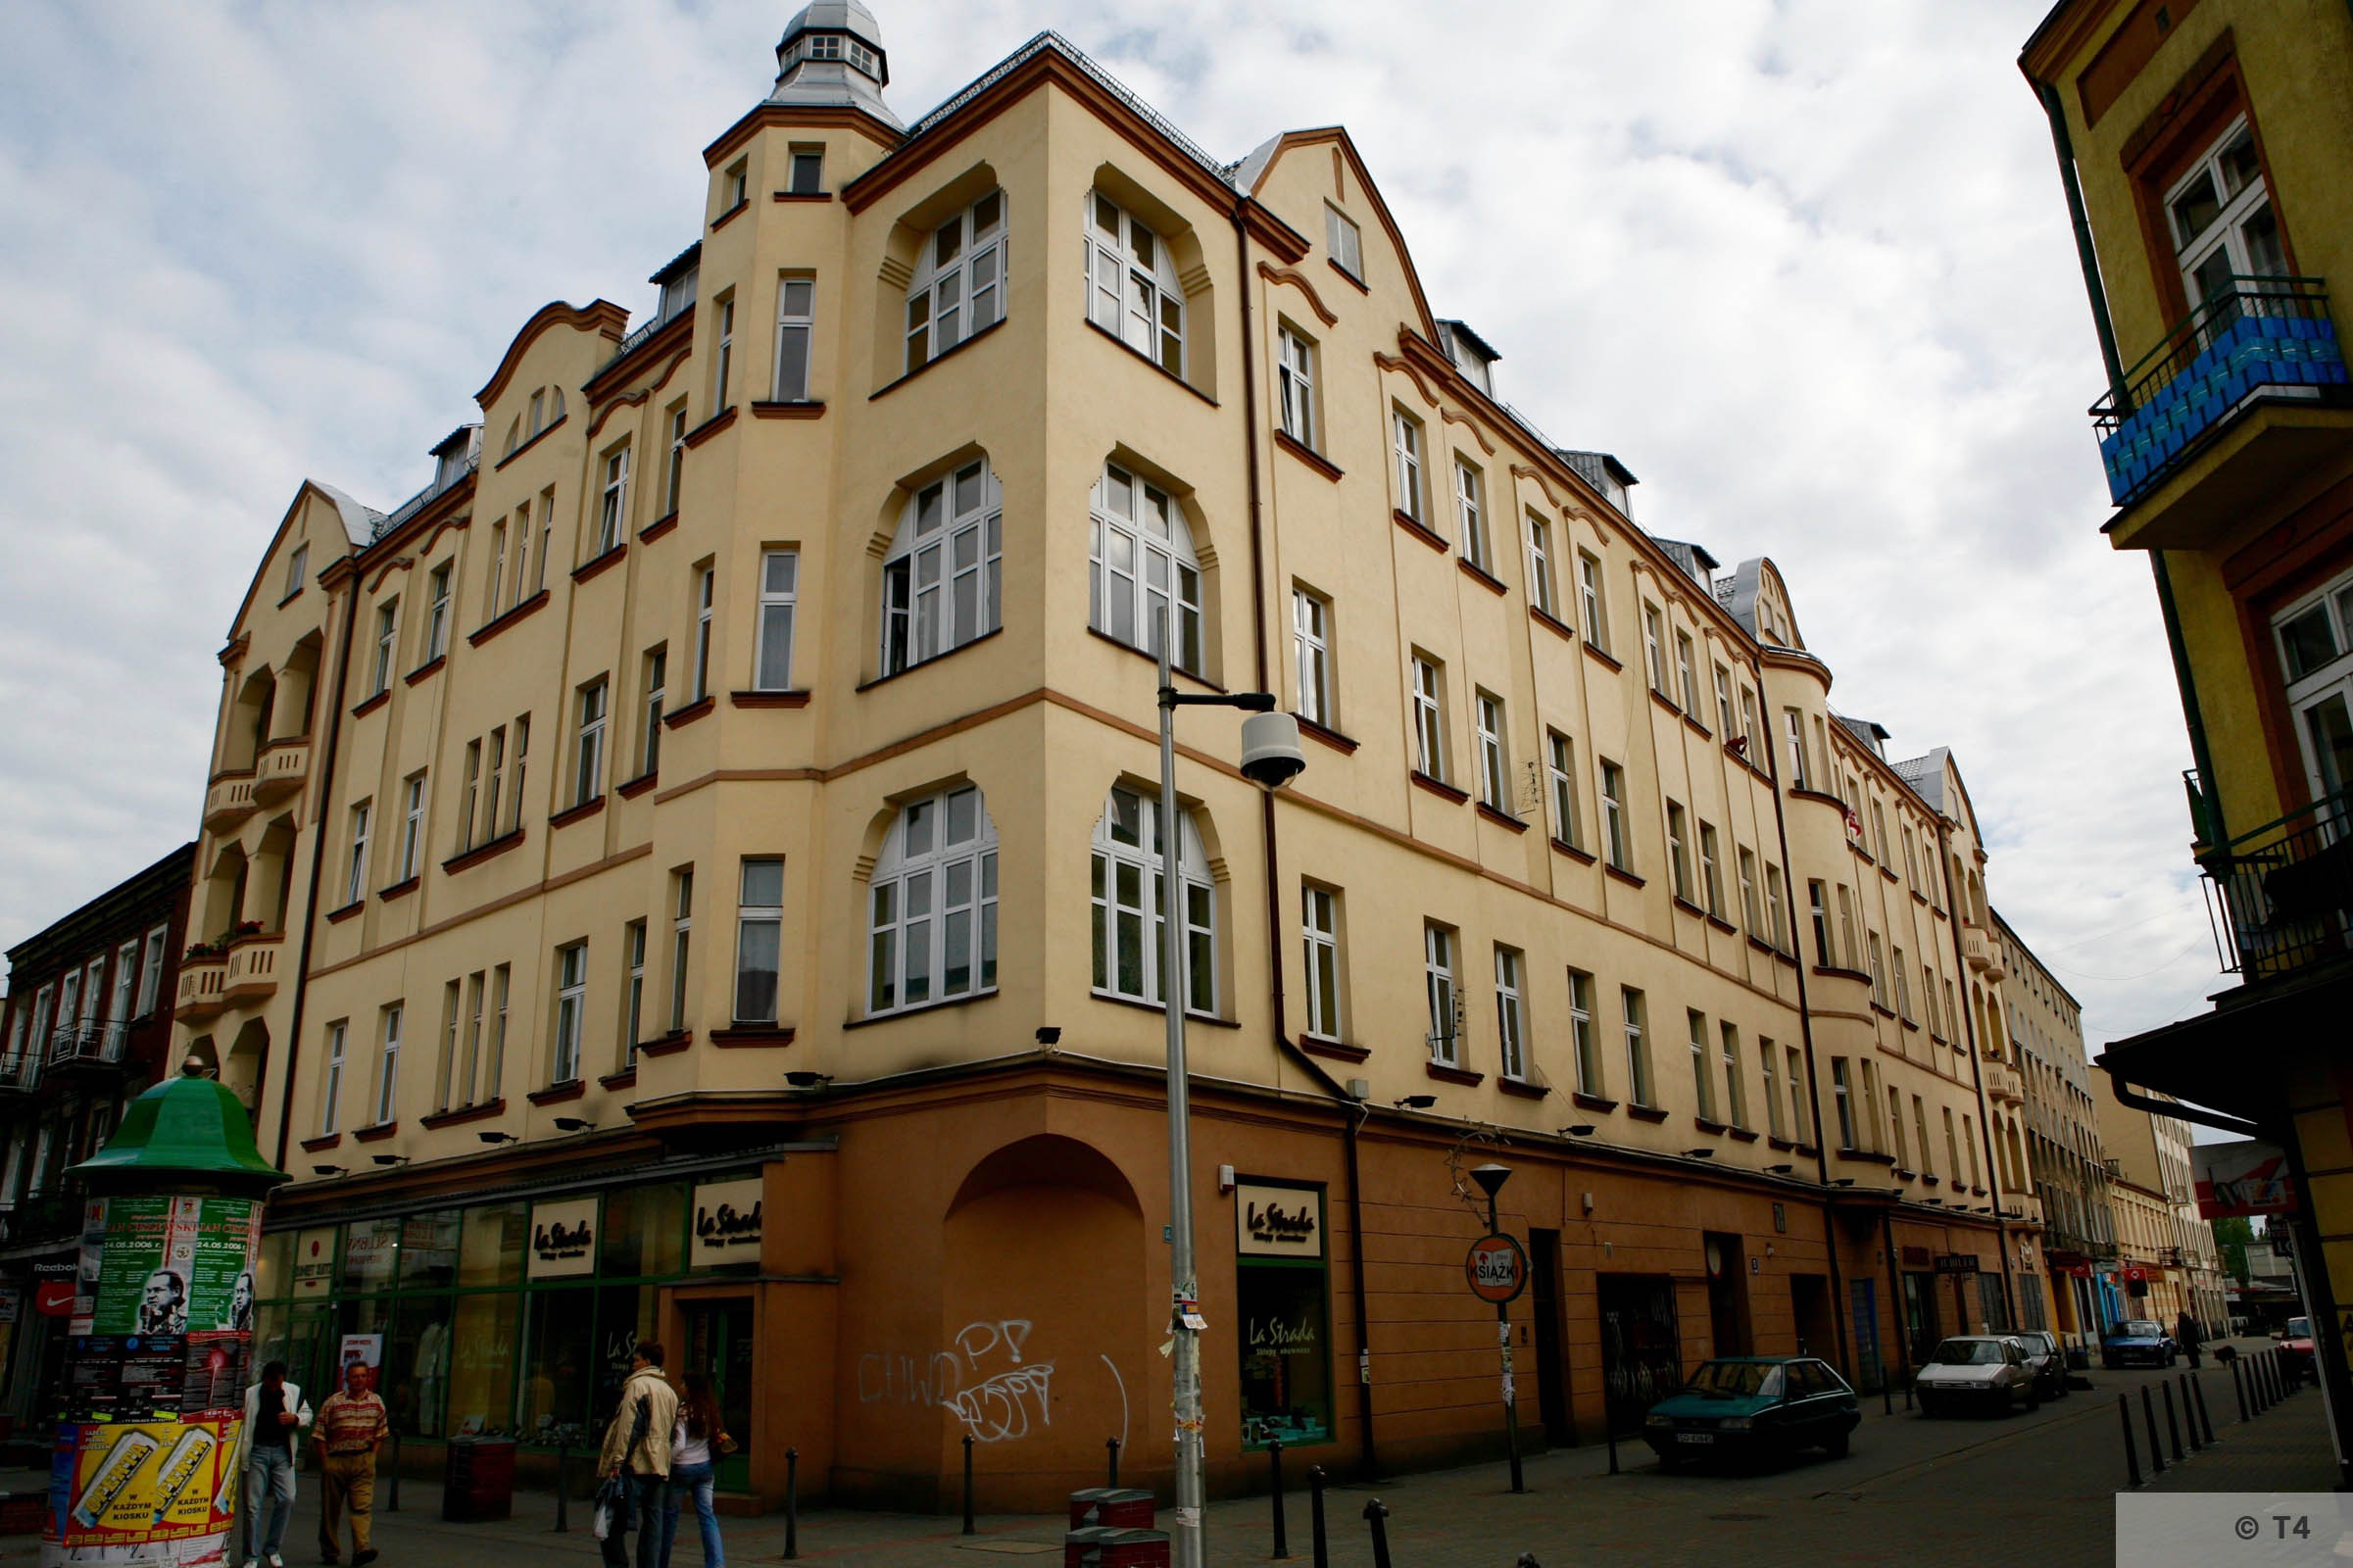 Former Central Jewish Communities Headquarters in Sosnowiec. T4 2005 6363